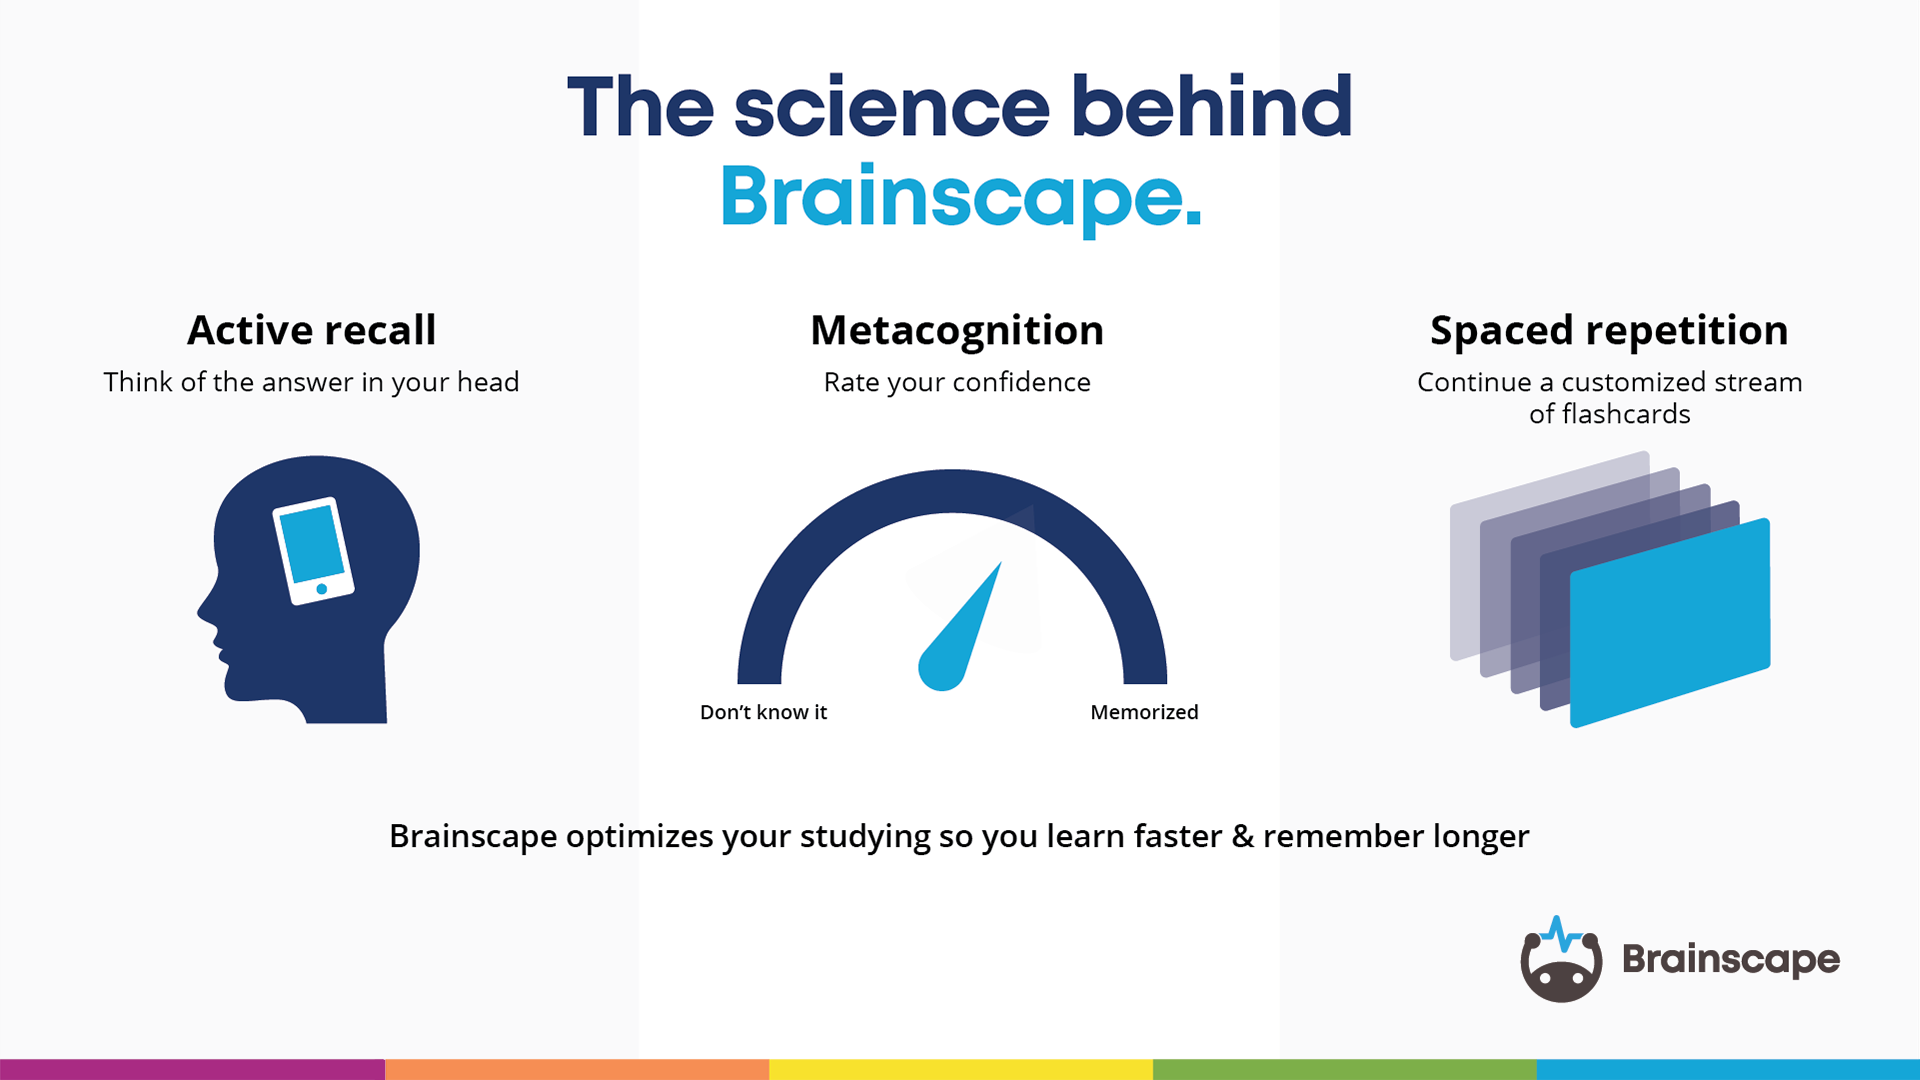 The science behind brainscape flashcards